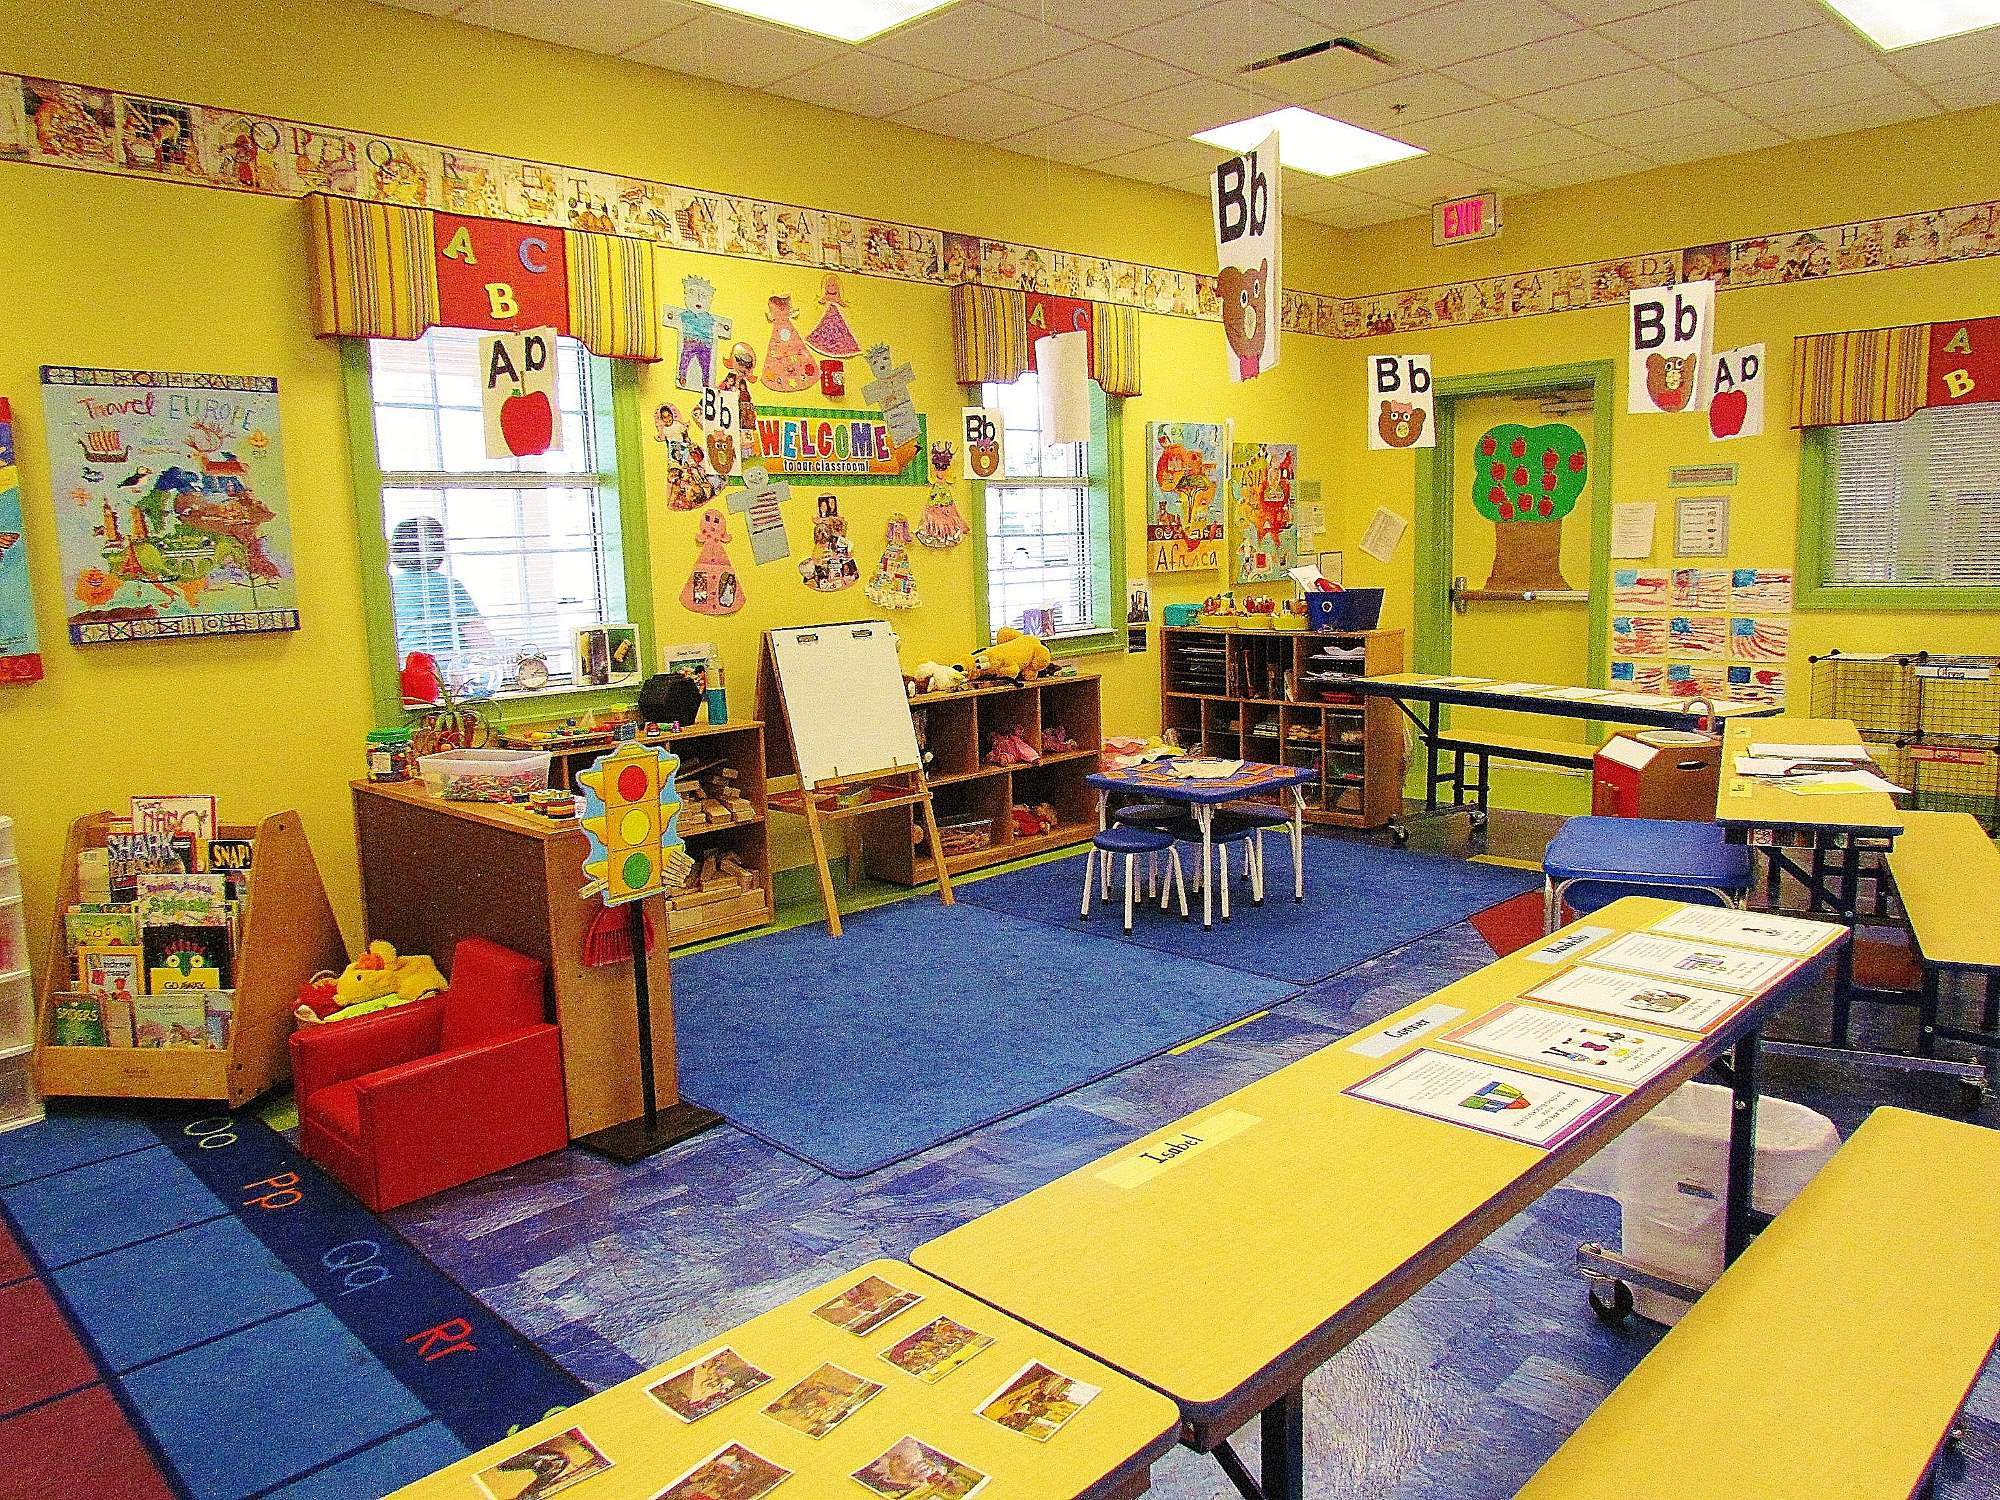 Early Childhood Center image 17 of 18